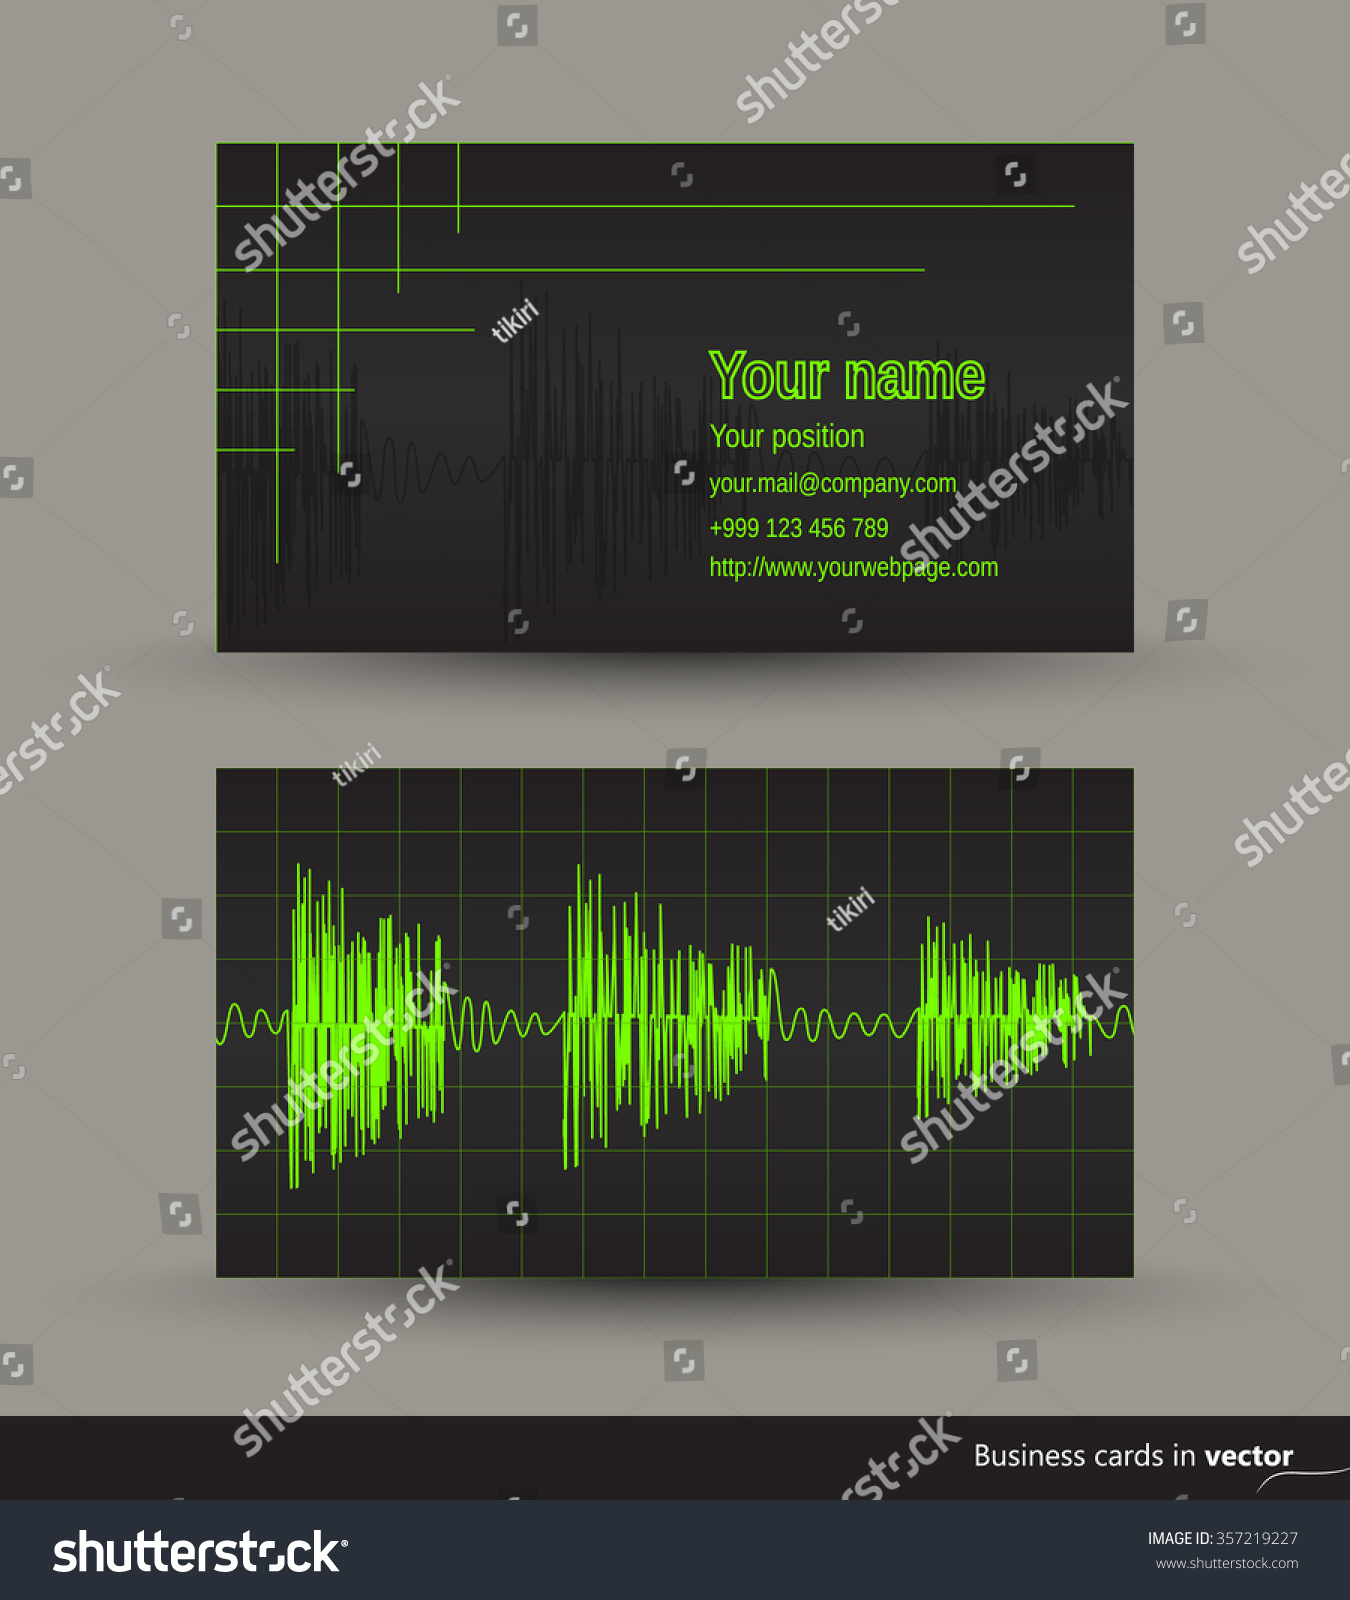 Music business card audio waveforms front stock vector royalty free music business card with audio waveforms front and back side vector eps 10 colourmoves